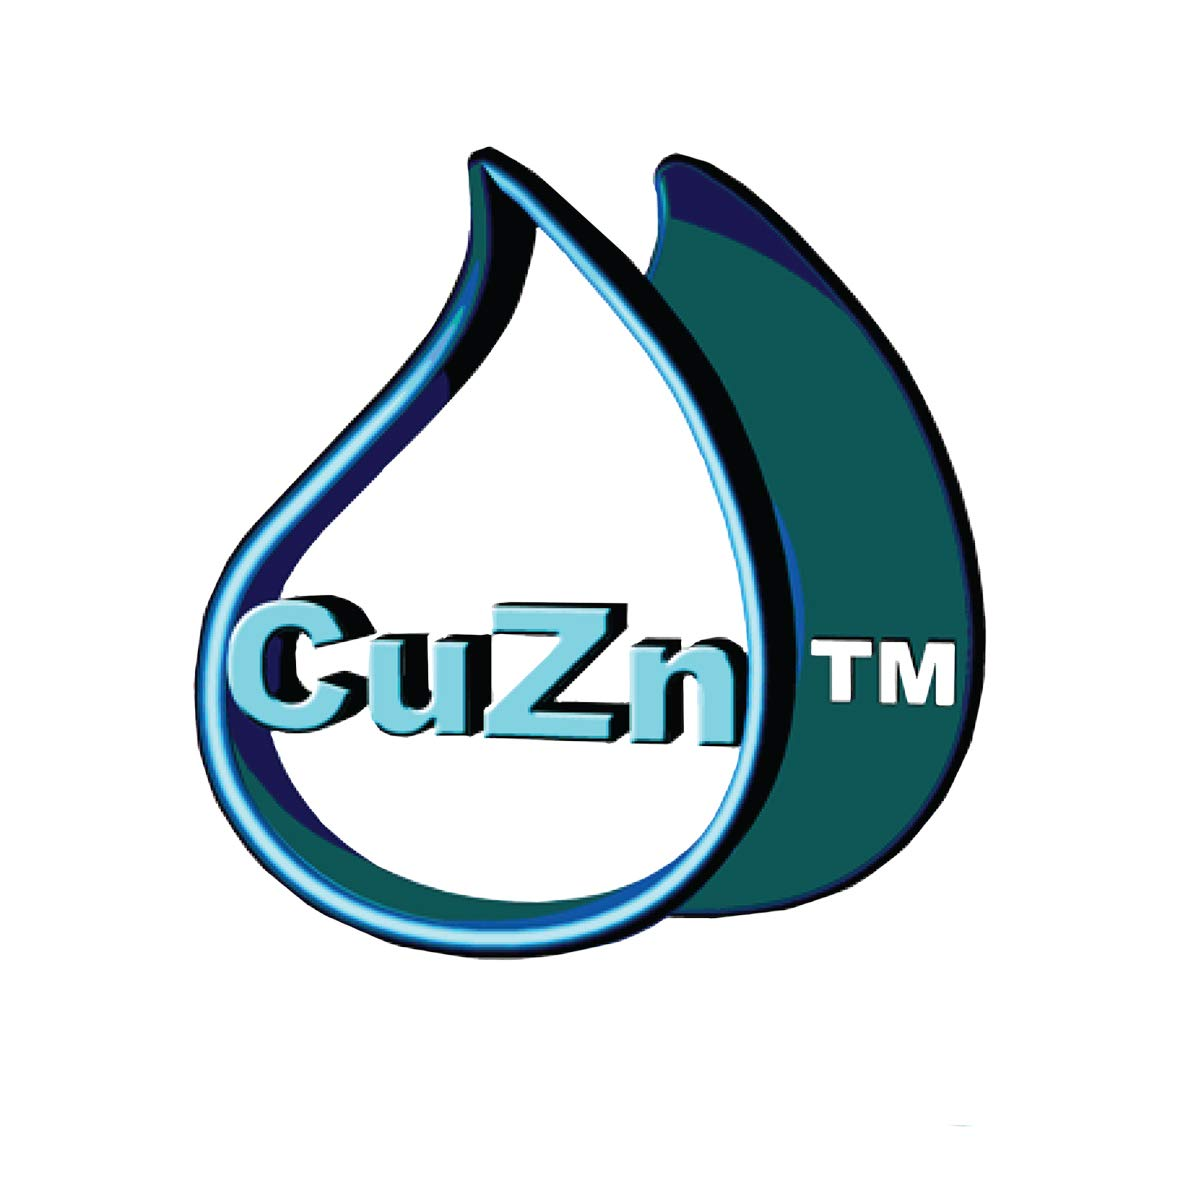 CuZn UC-200 Under Counter Water Filter - 50K Ultra High Capacity - Made in USA by CuZn (Image #4)